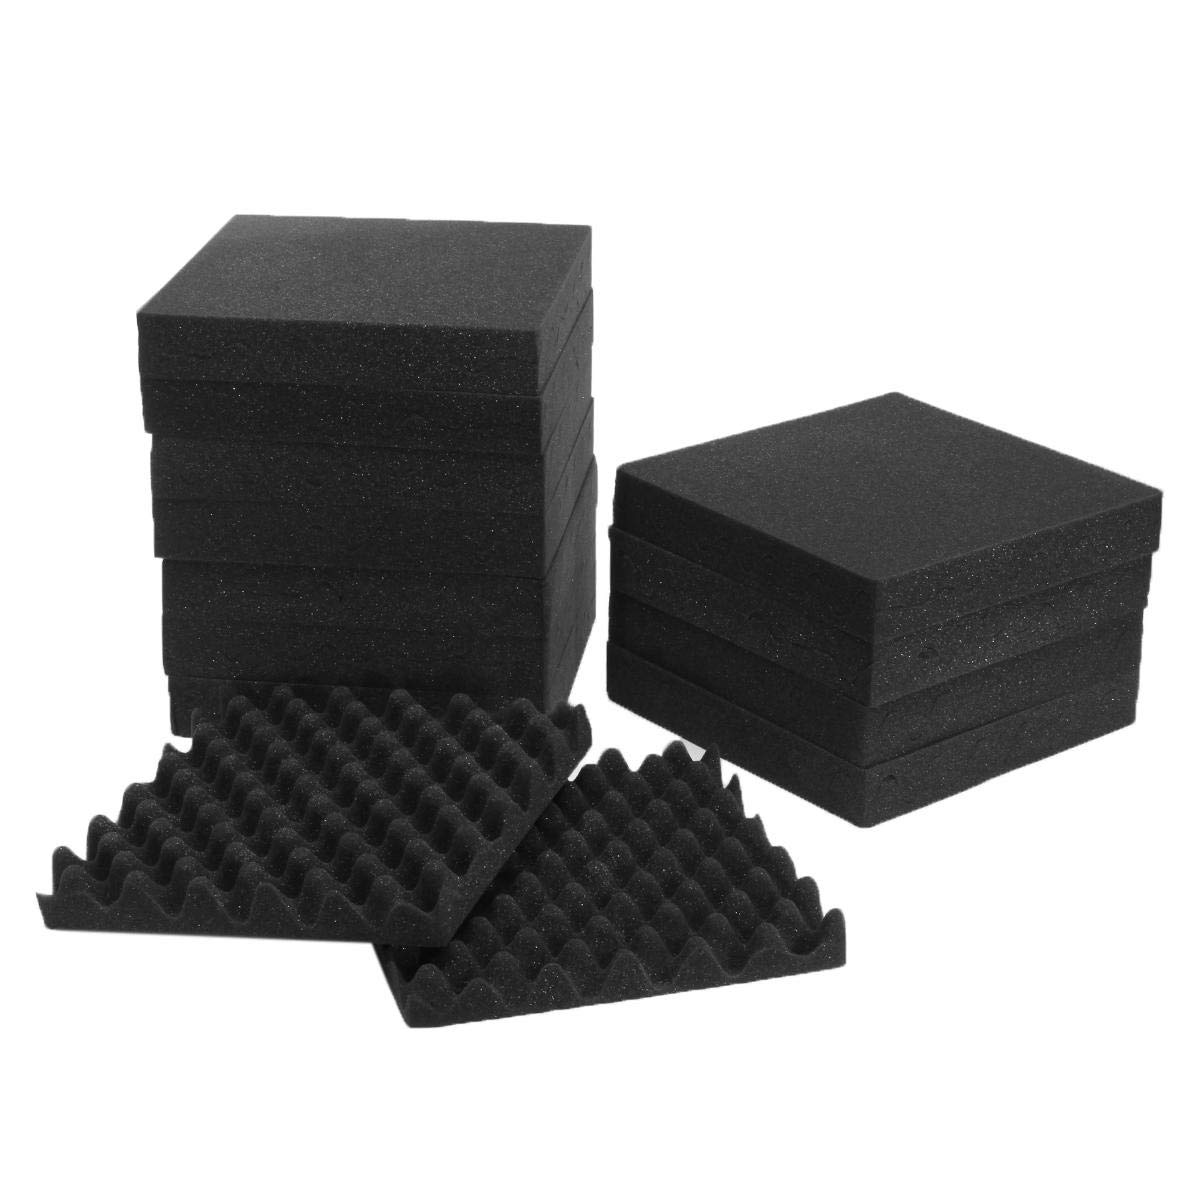 Stock_Home, Raw Materials, 24Pcs Acoustic Sound Treatment Convoluted Egg Profile Foam Panels Soundproofing Foam